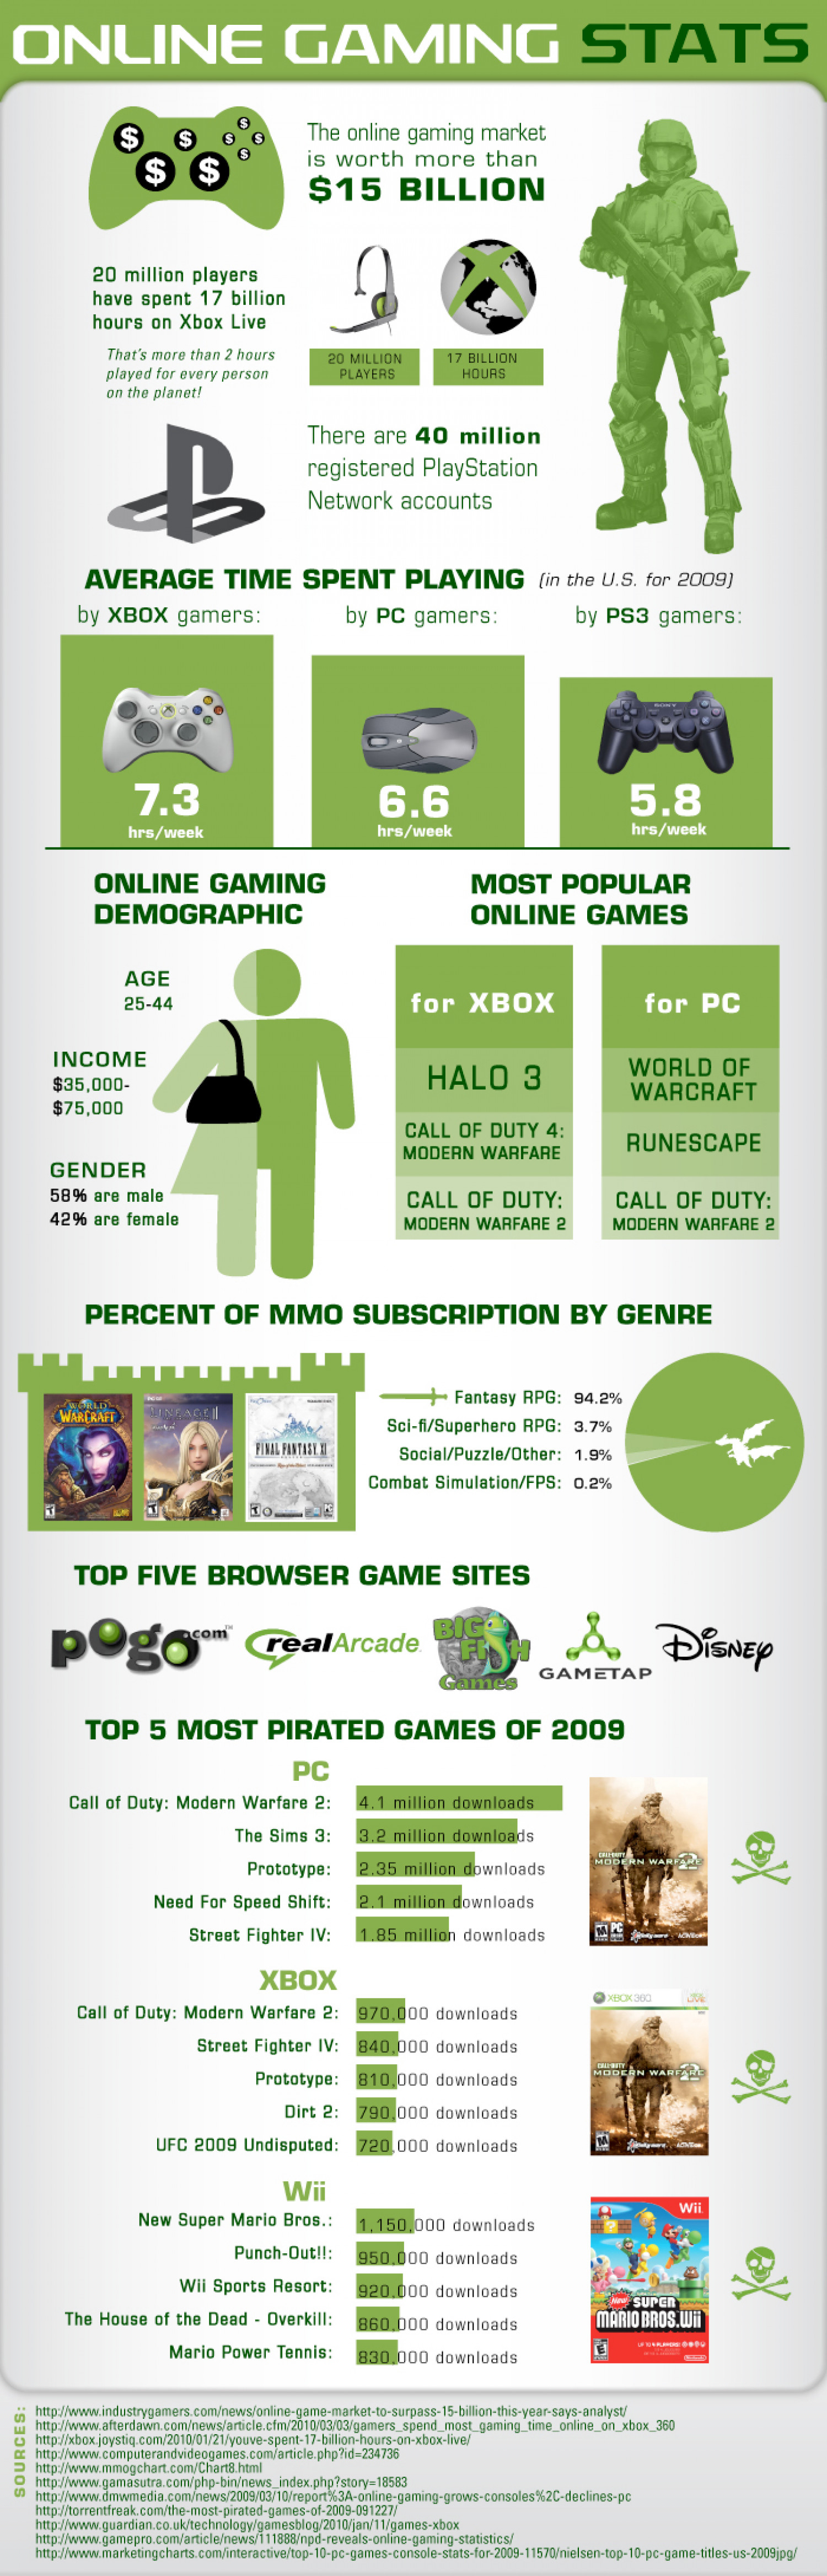 Online Gaming Stats Infographic